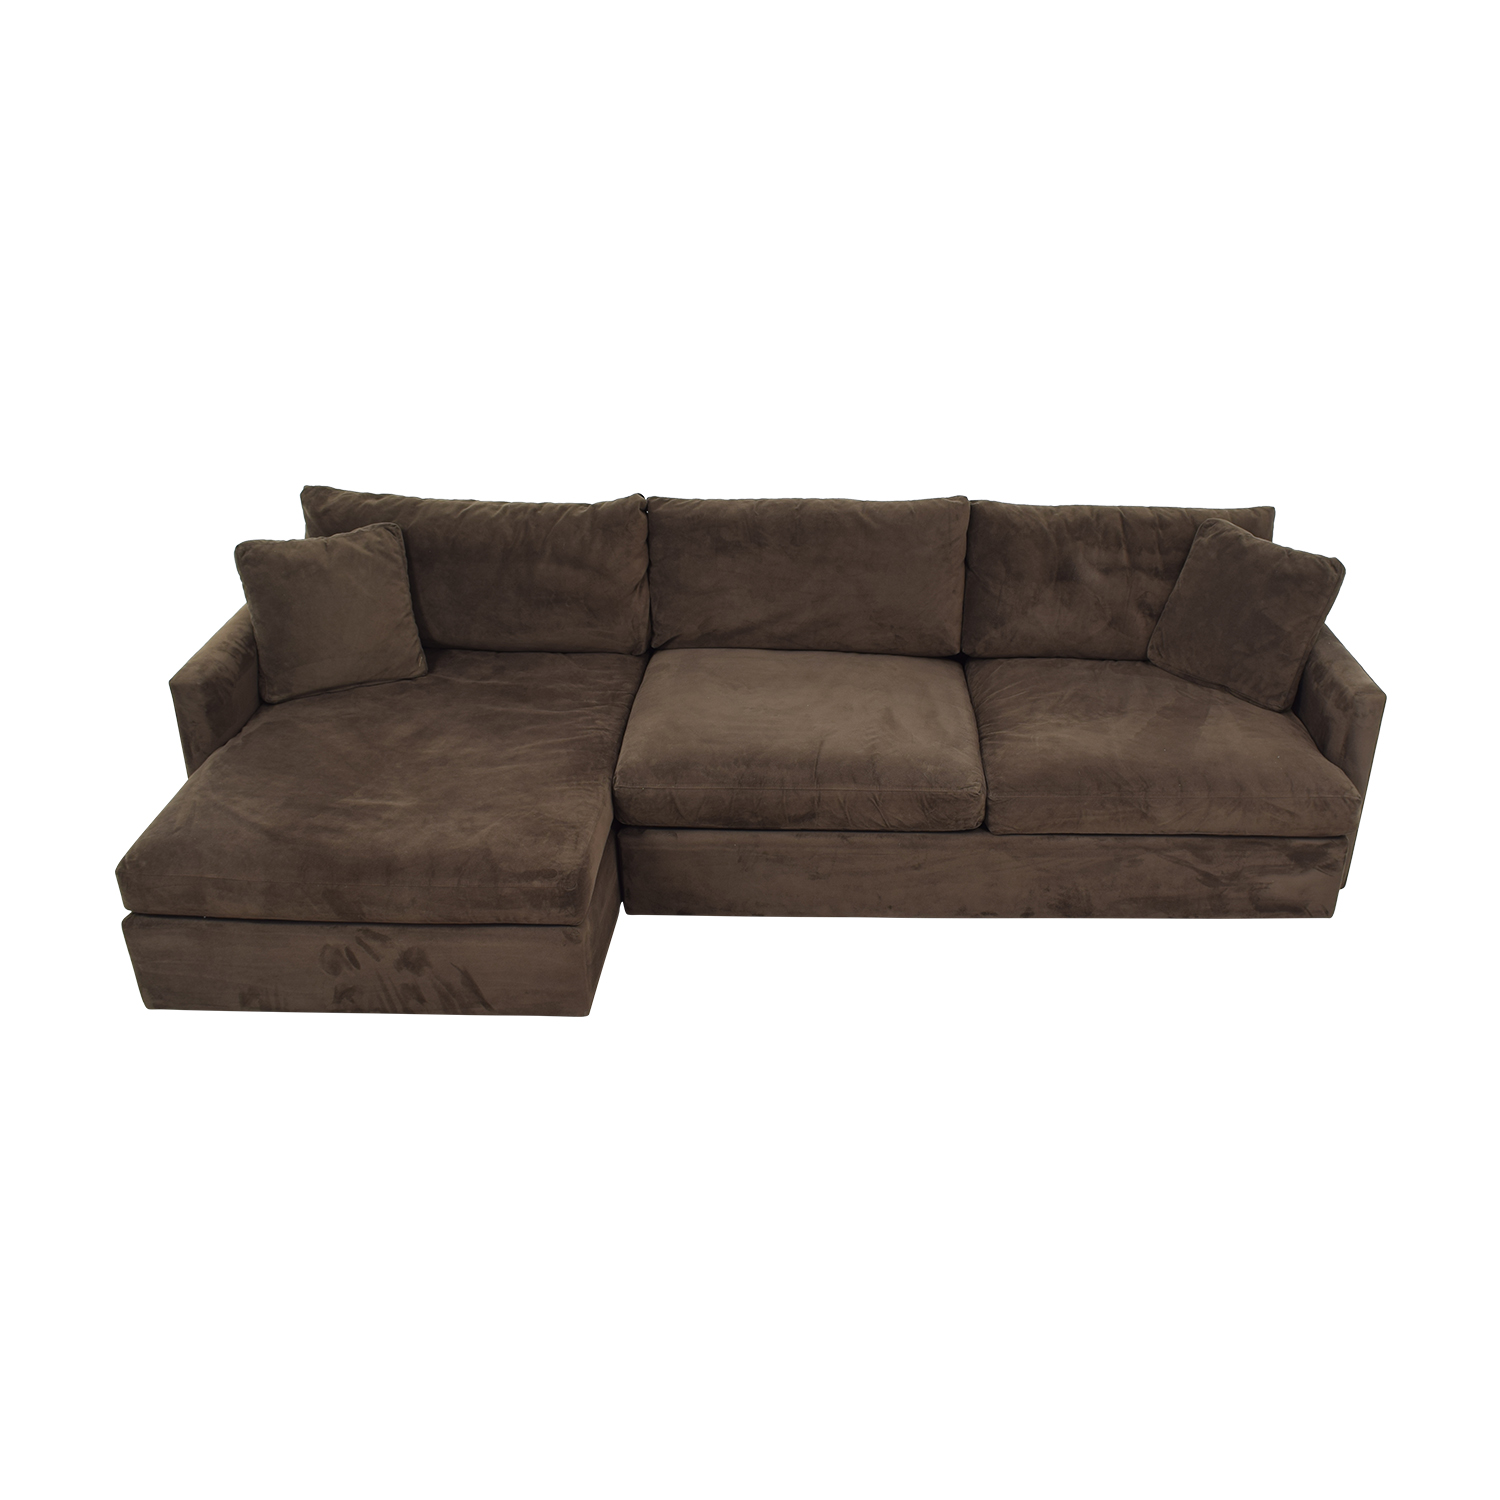 77 Off Crate Barrel Crate Barrel Sofa Sectional With Chaise Sofas